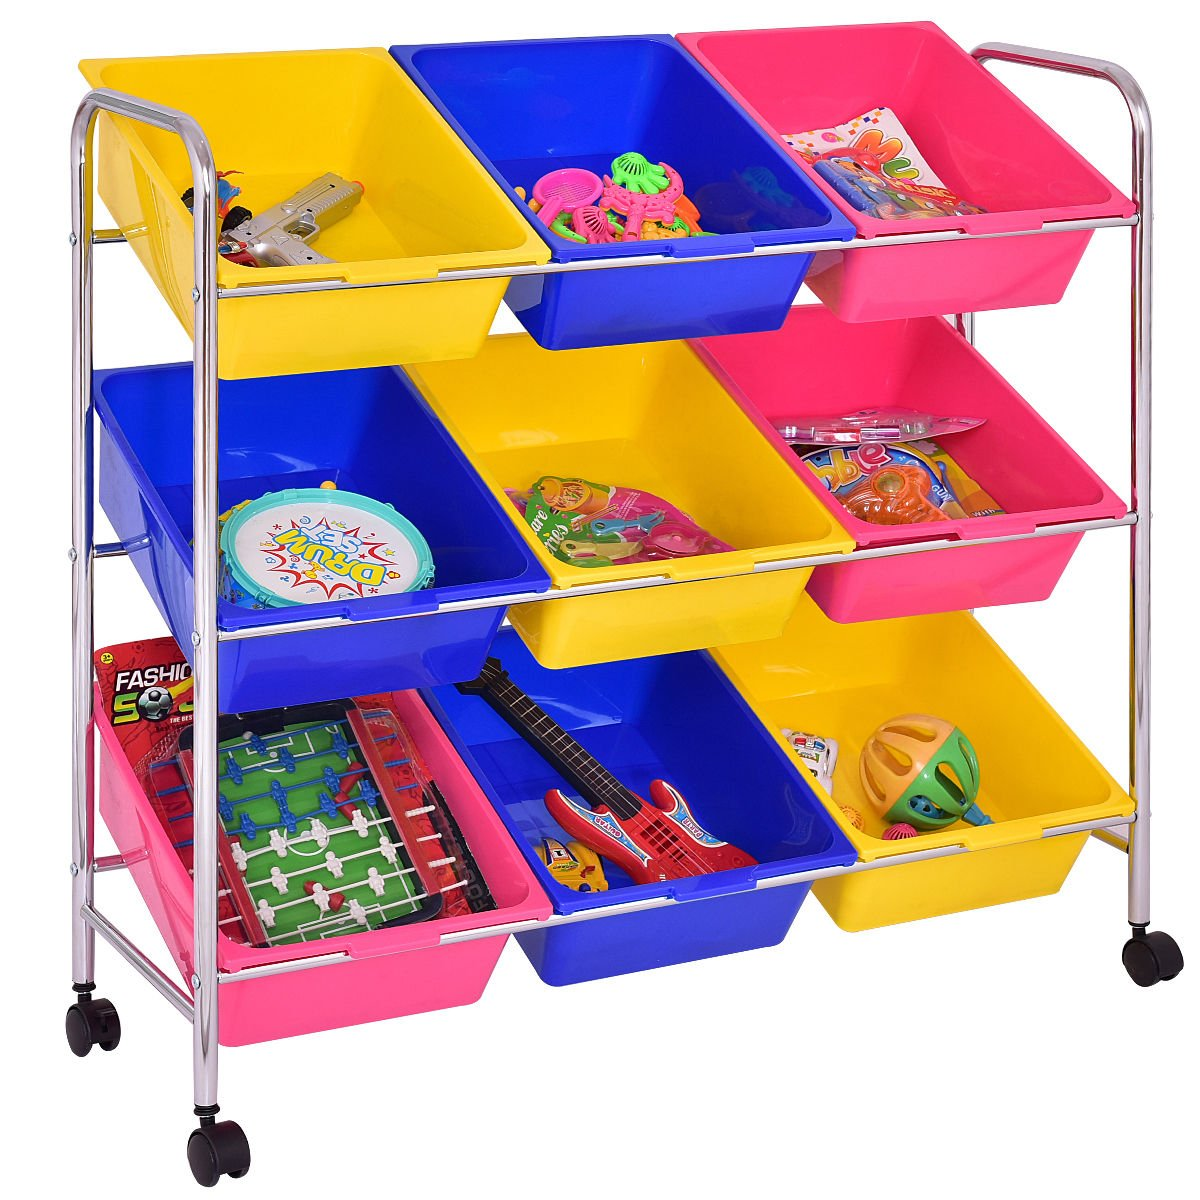 KCHEX>Toy Bin Cart Rack Organizer Kids Childrens Storage Box Playroom Bedroom Shelf>This is Our 9 Plastic Drawer Rolling cart, which is of and Brand New. Thanks to its Colorful Plastic by KCHEX (Image #8)